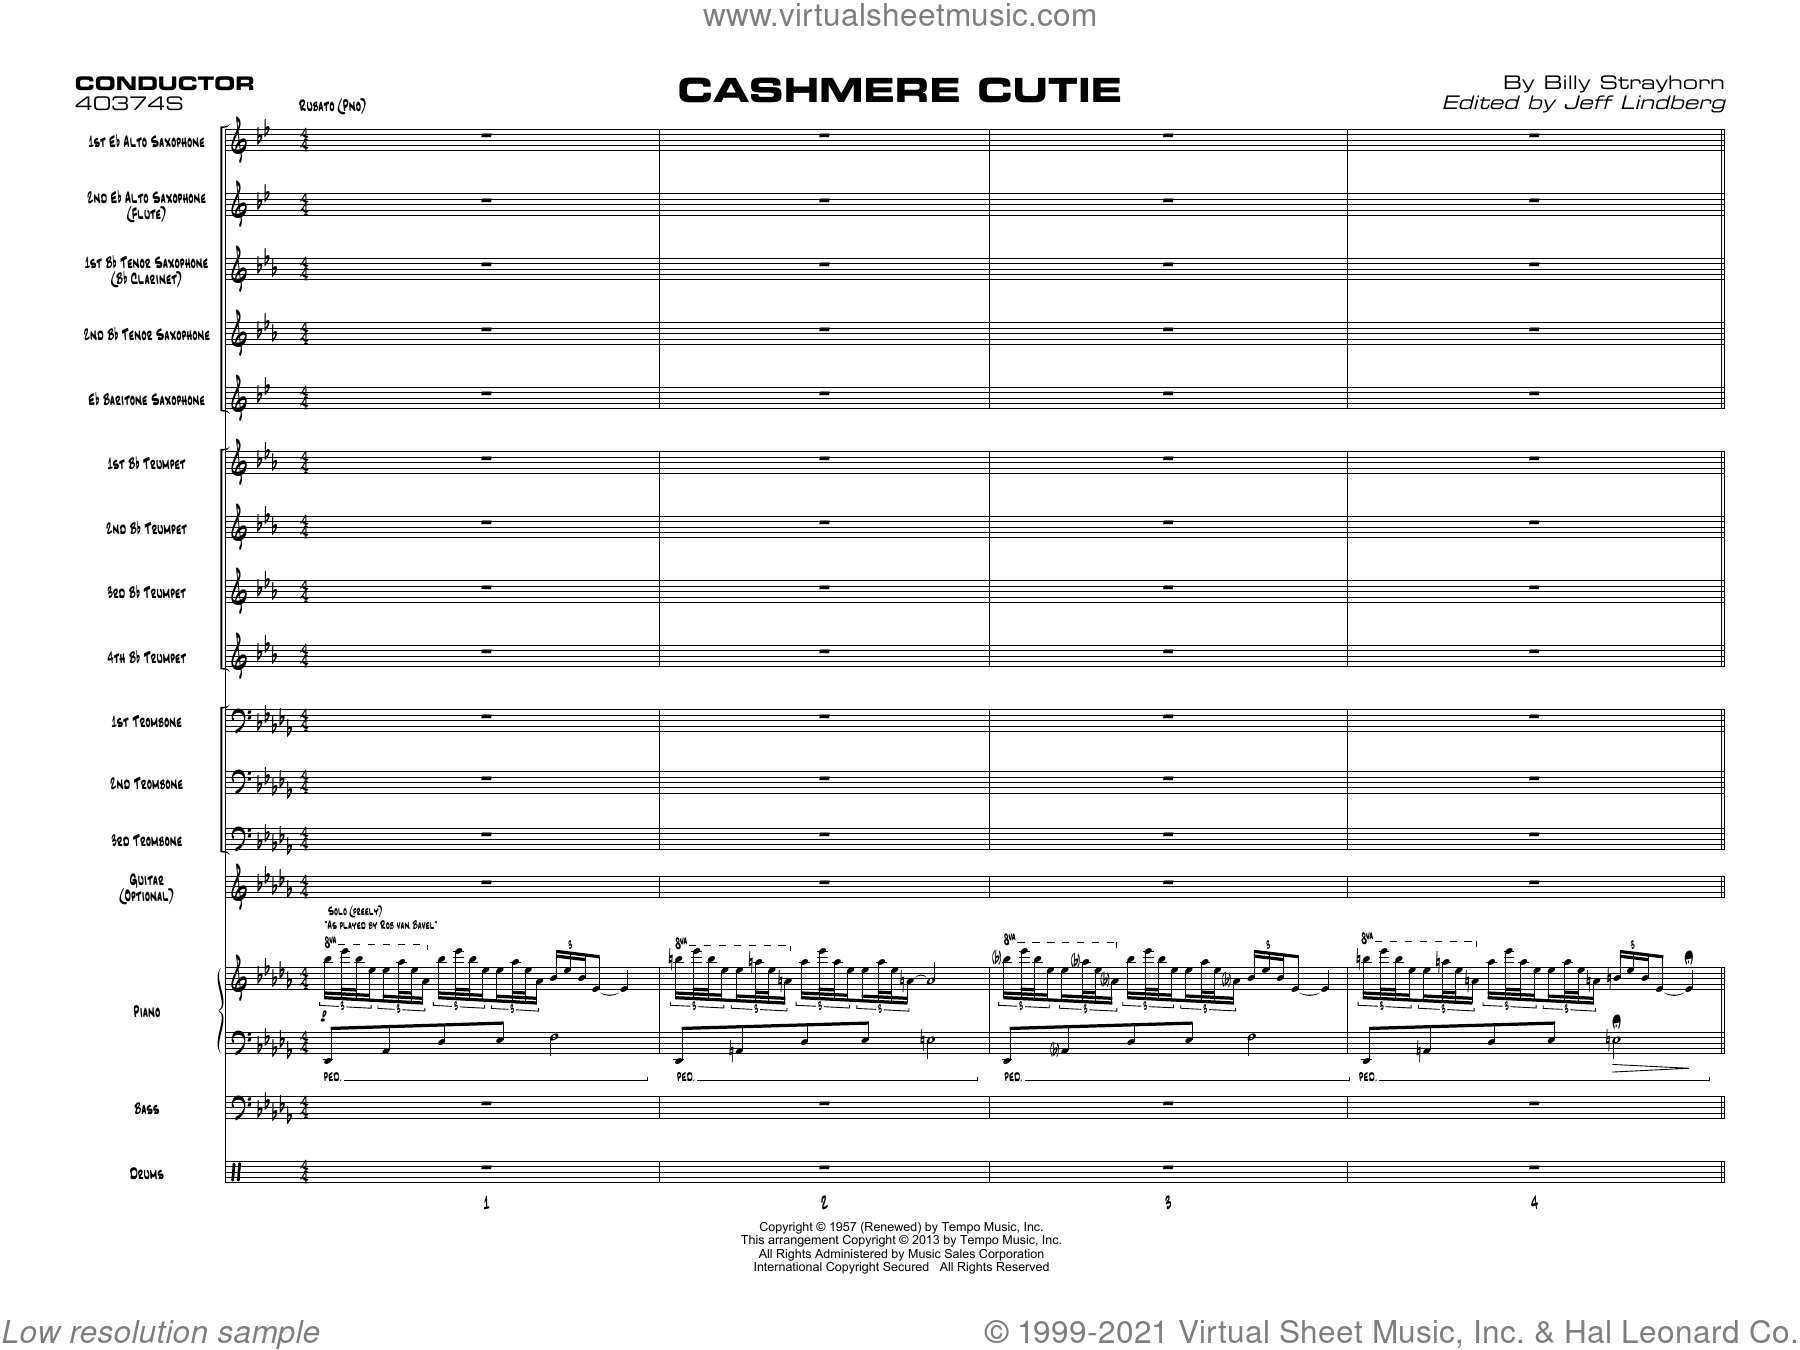 Cashmere Cutie (COMPLETE) sheet music for jazz band by Billy Strayhorn and Jeff Lindberg, intermediate skill level